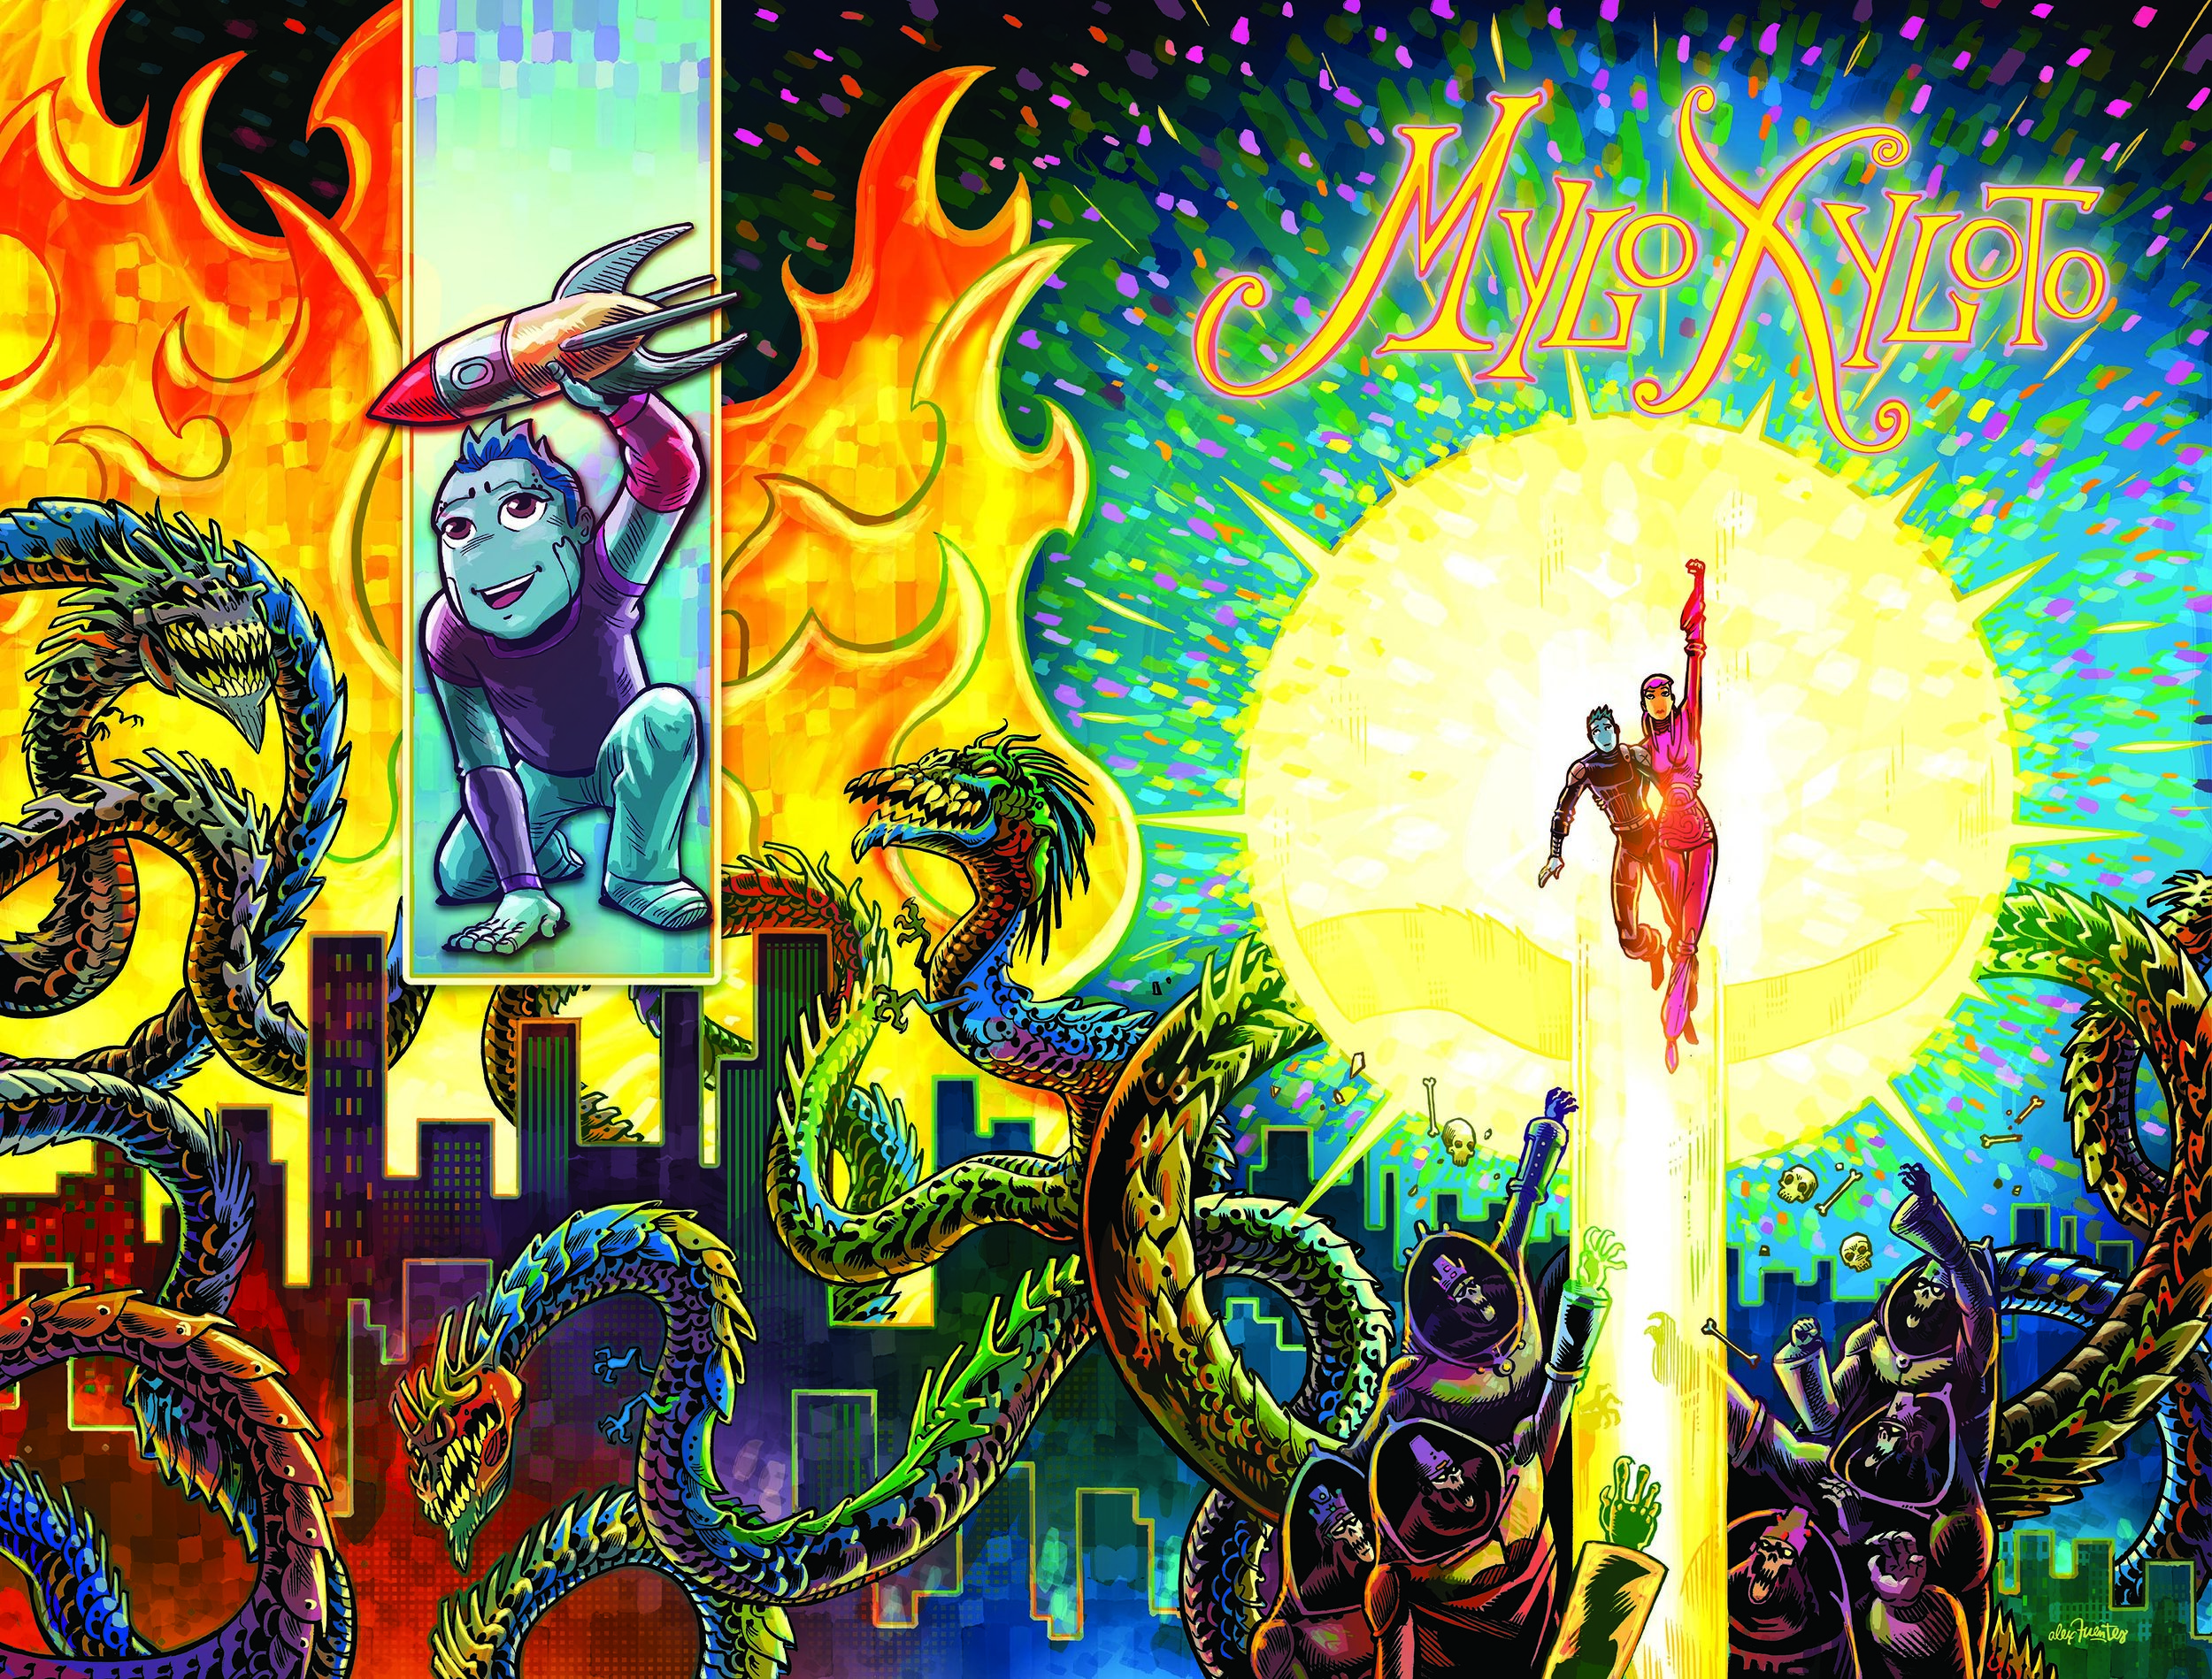 One of six 2-page spread cover images for the limited series of    MYLO XYLOTO COMICS    (co-created by Mark Osborne and Coldplay). This cover features artwork and color by Alex Fuentes, the sci-fi fantasy epic tells the tale of a musical graffiti rebellion in a dystopian world where color and music are forbidden.